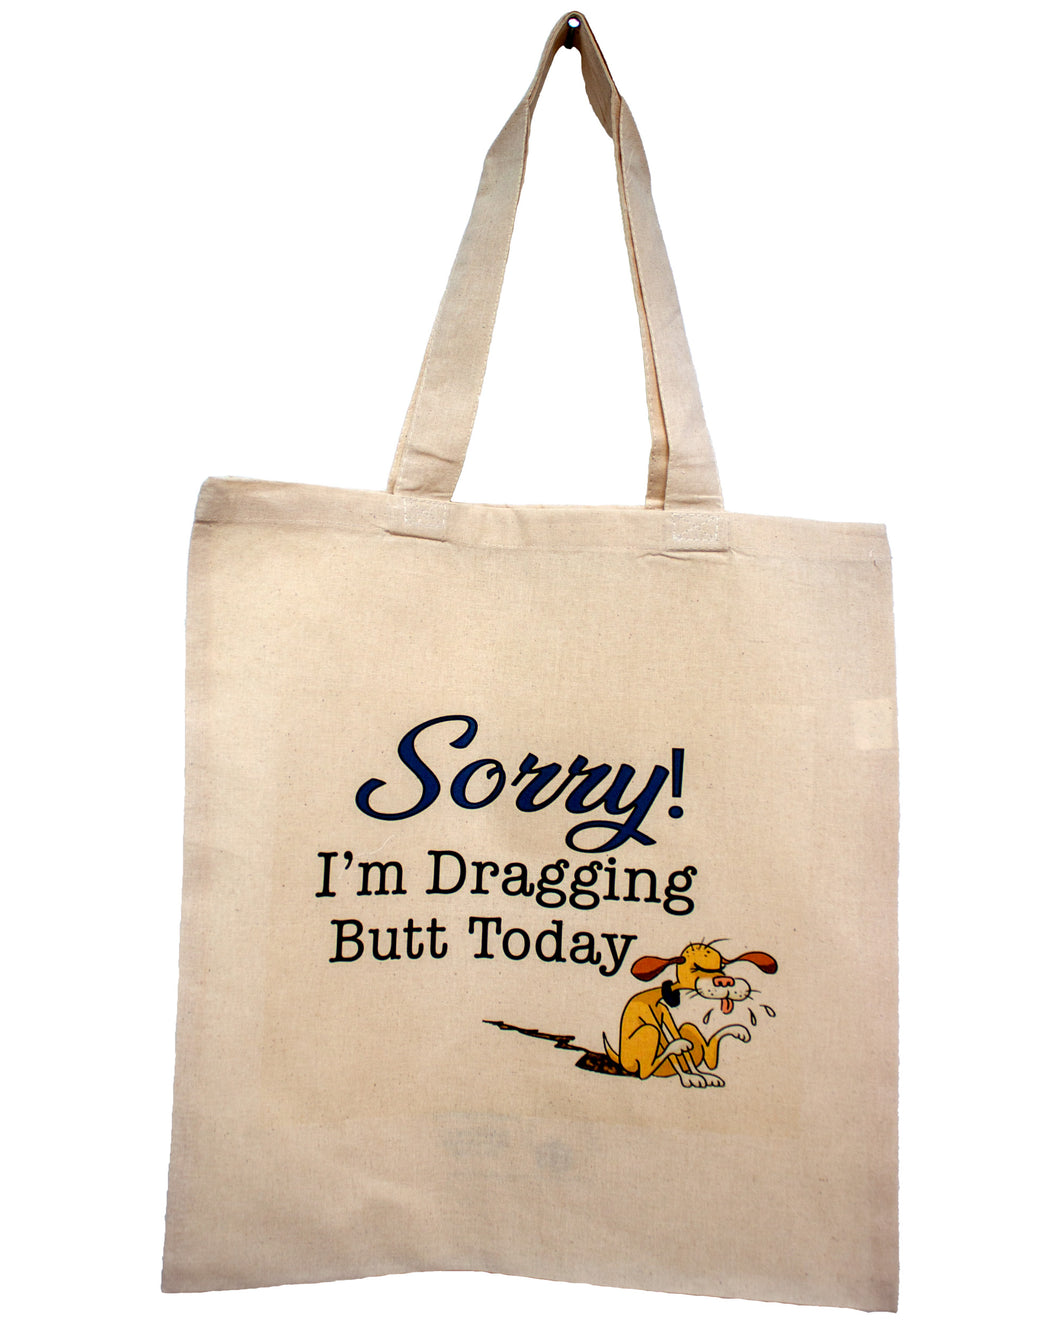 Sorry! I'm Dragging Butt Today Tote Bag